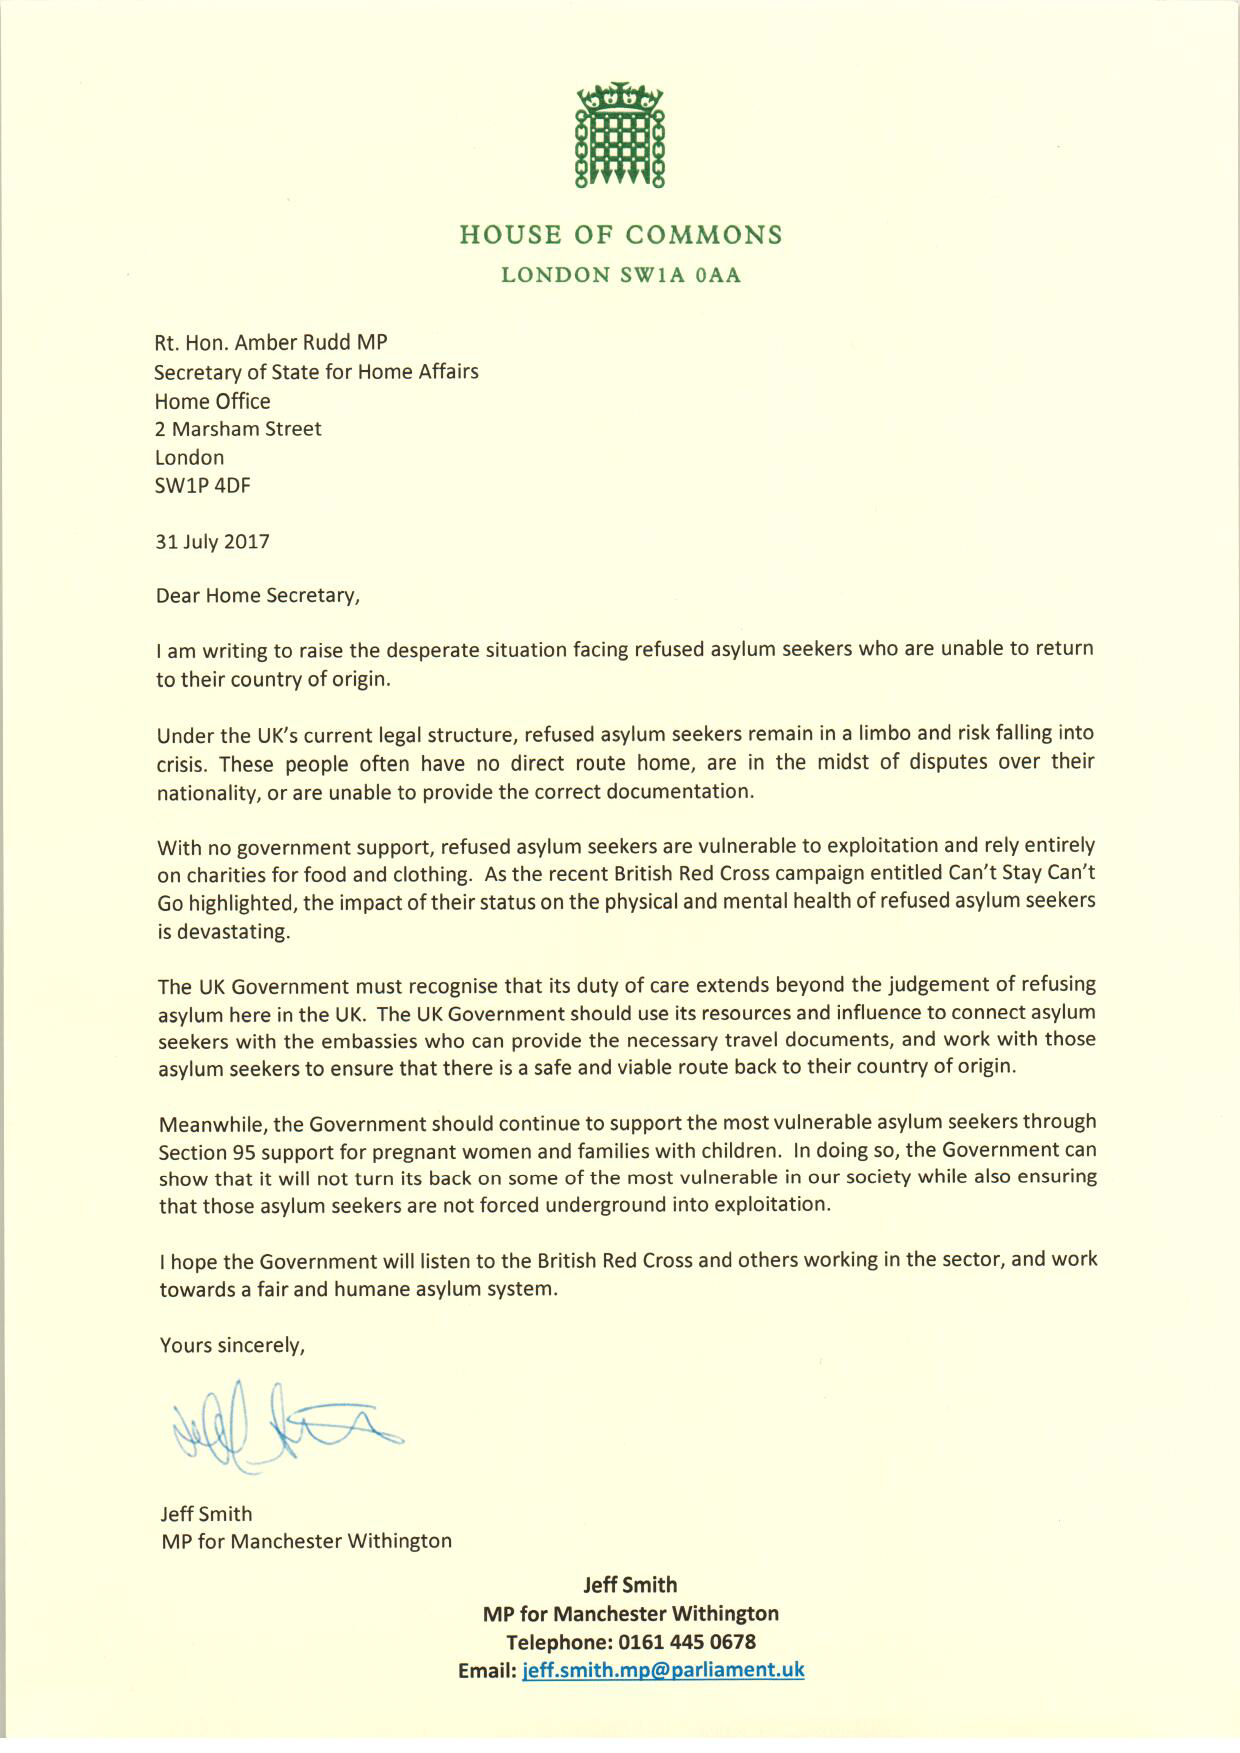 Letter_to_Home_Secretary_on_British_Red_Cross_campaign.png